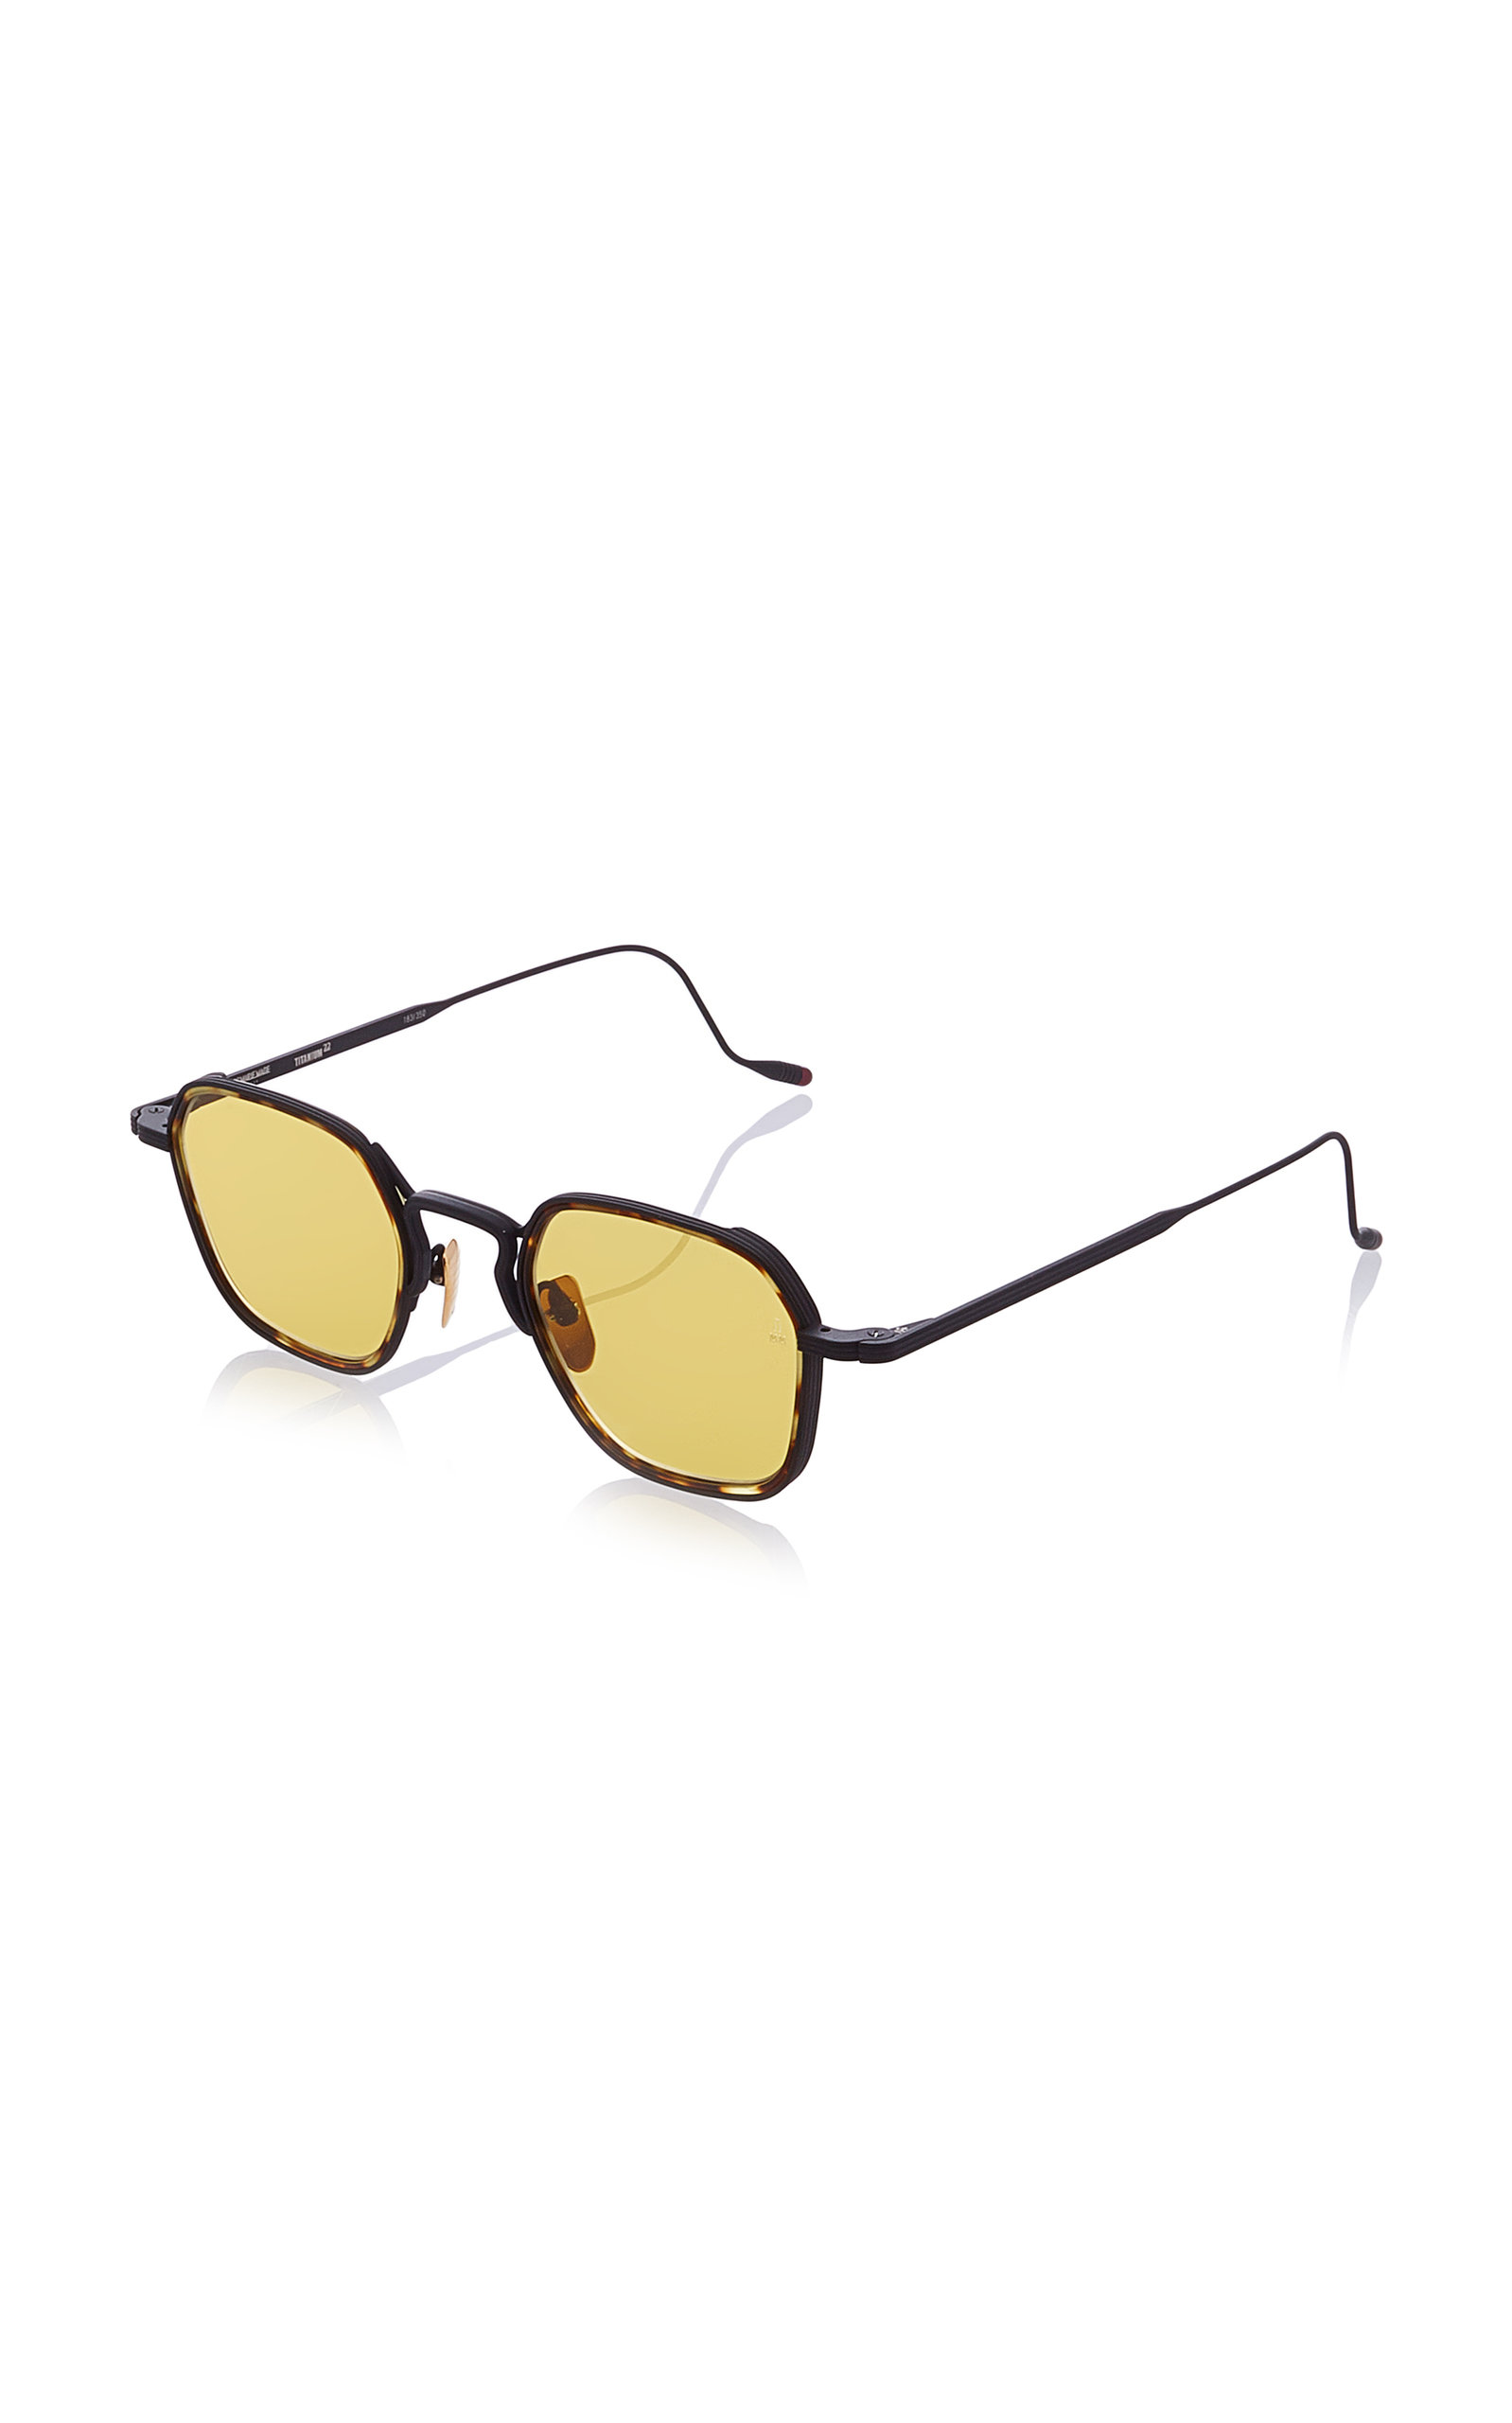 c0670a4e577 Jacques Marie Mage Wyatt Hexagon-Frame Tortoiseshell Wire Sunglasses In  Brown